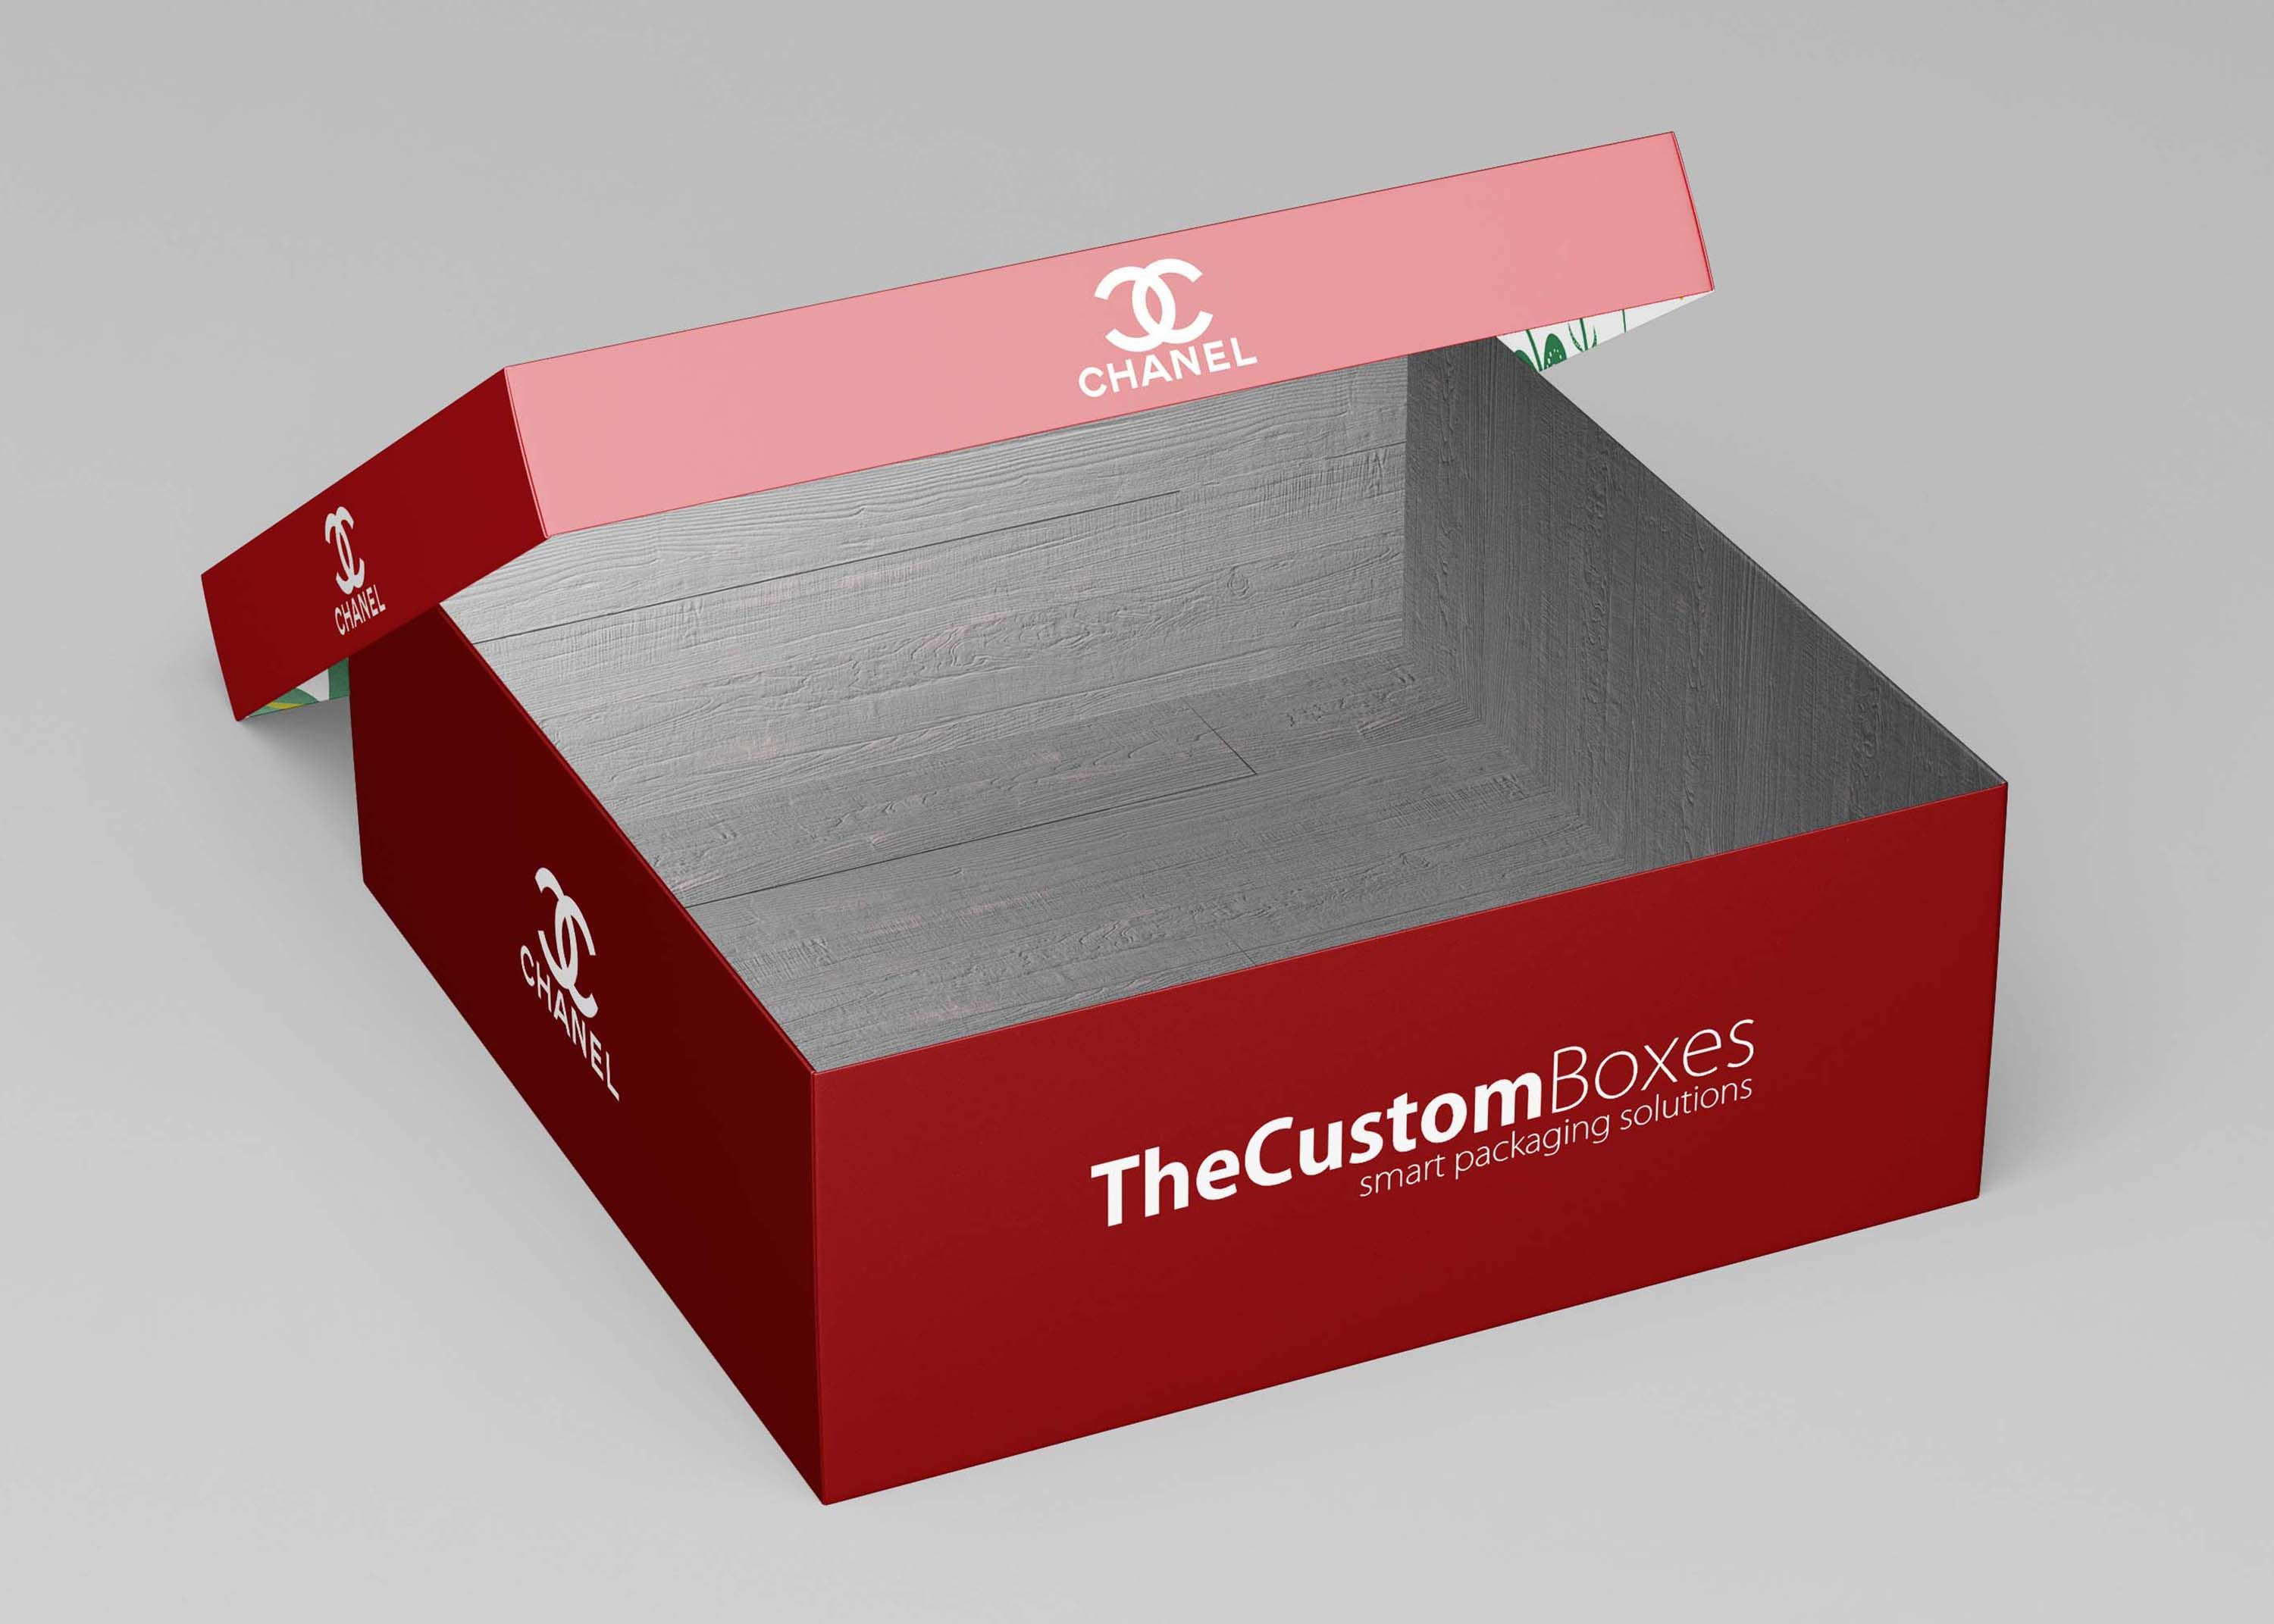 Download Free Small Boxes Packaging Psd Mockup Mockup Psd Free Mockup Mockup Free Psd